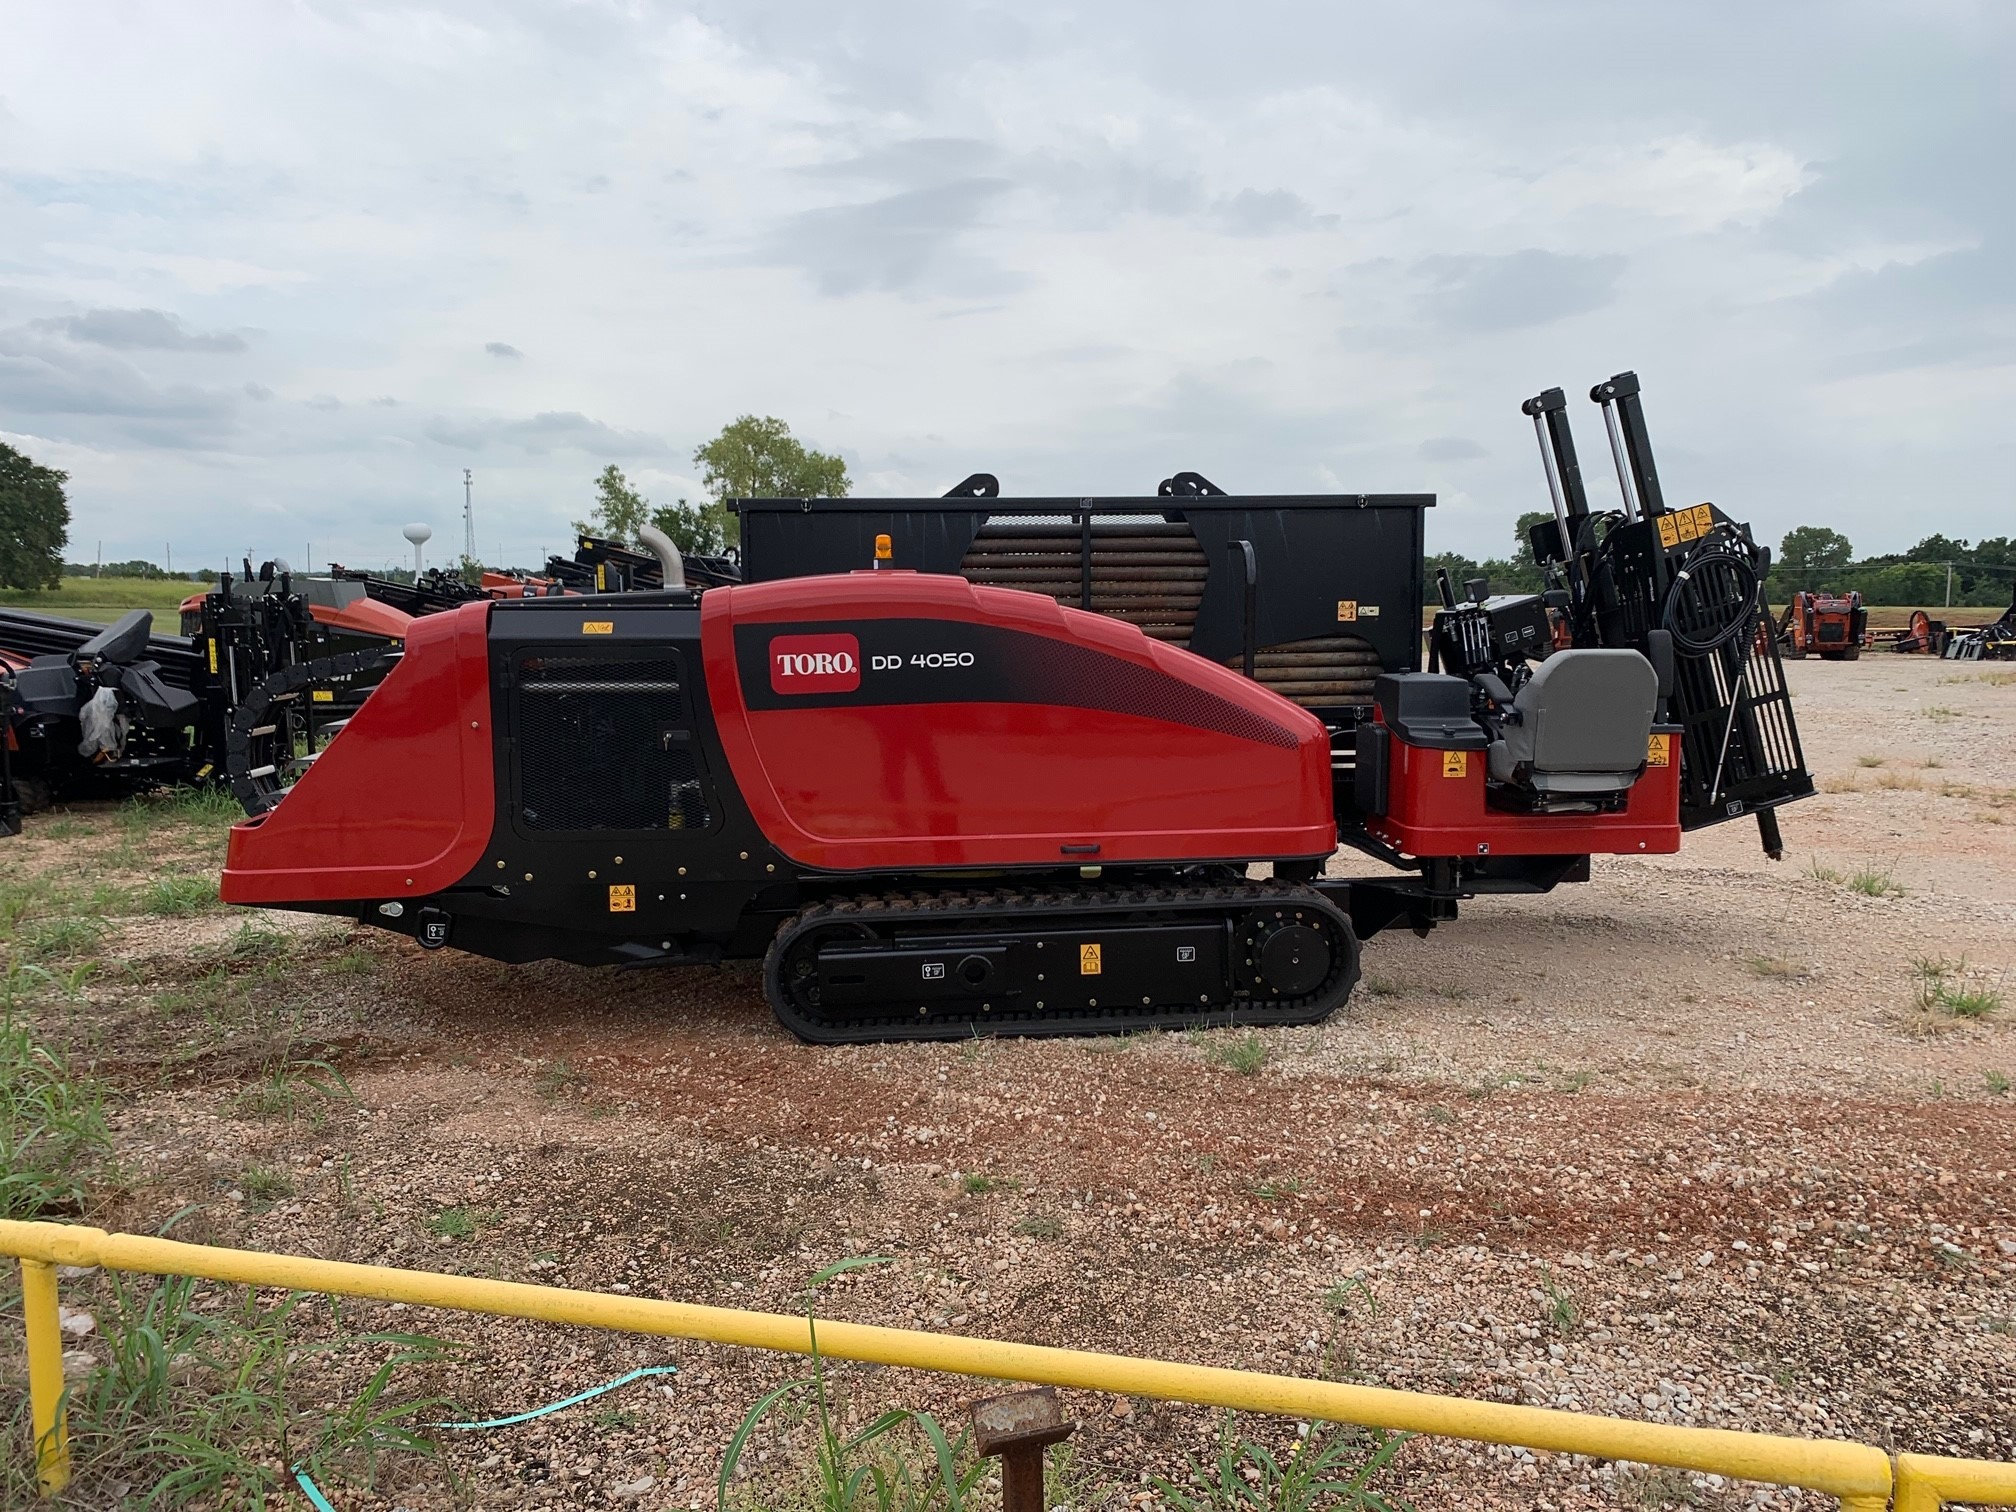 Used, 2016, Toro, Brand New DD4050 with 500' Forged Pipe, Housing and Bit.  12 Month Factory Warranty, Boring / Drilling Machines